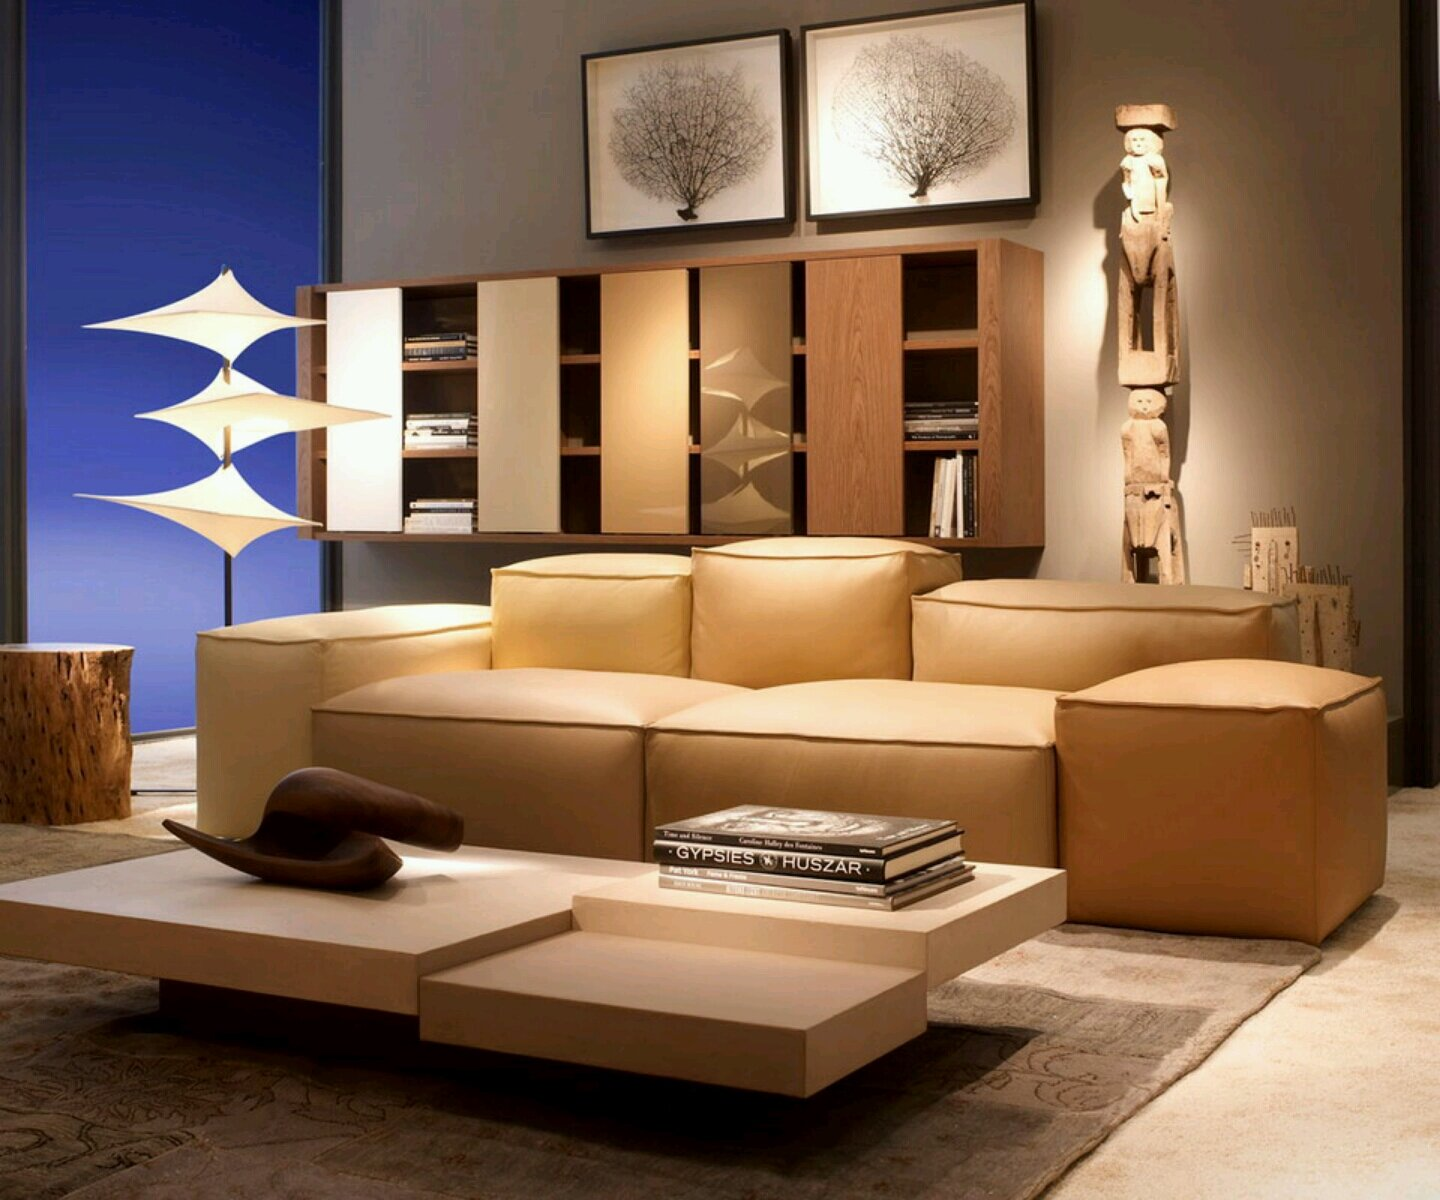 15 really beautiful sofa designs and ideas mostbeautifulthings Designer loveseats